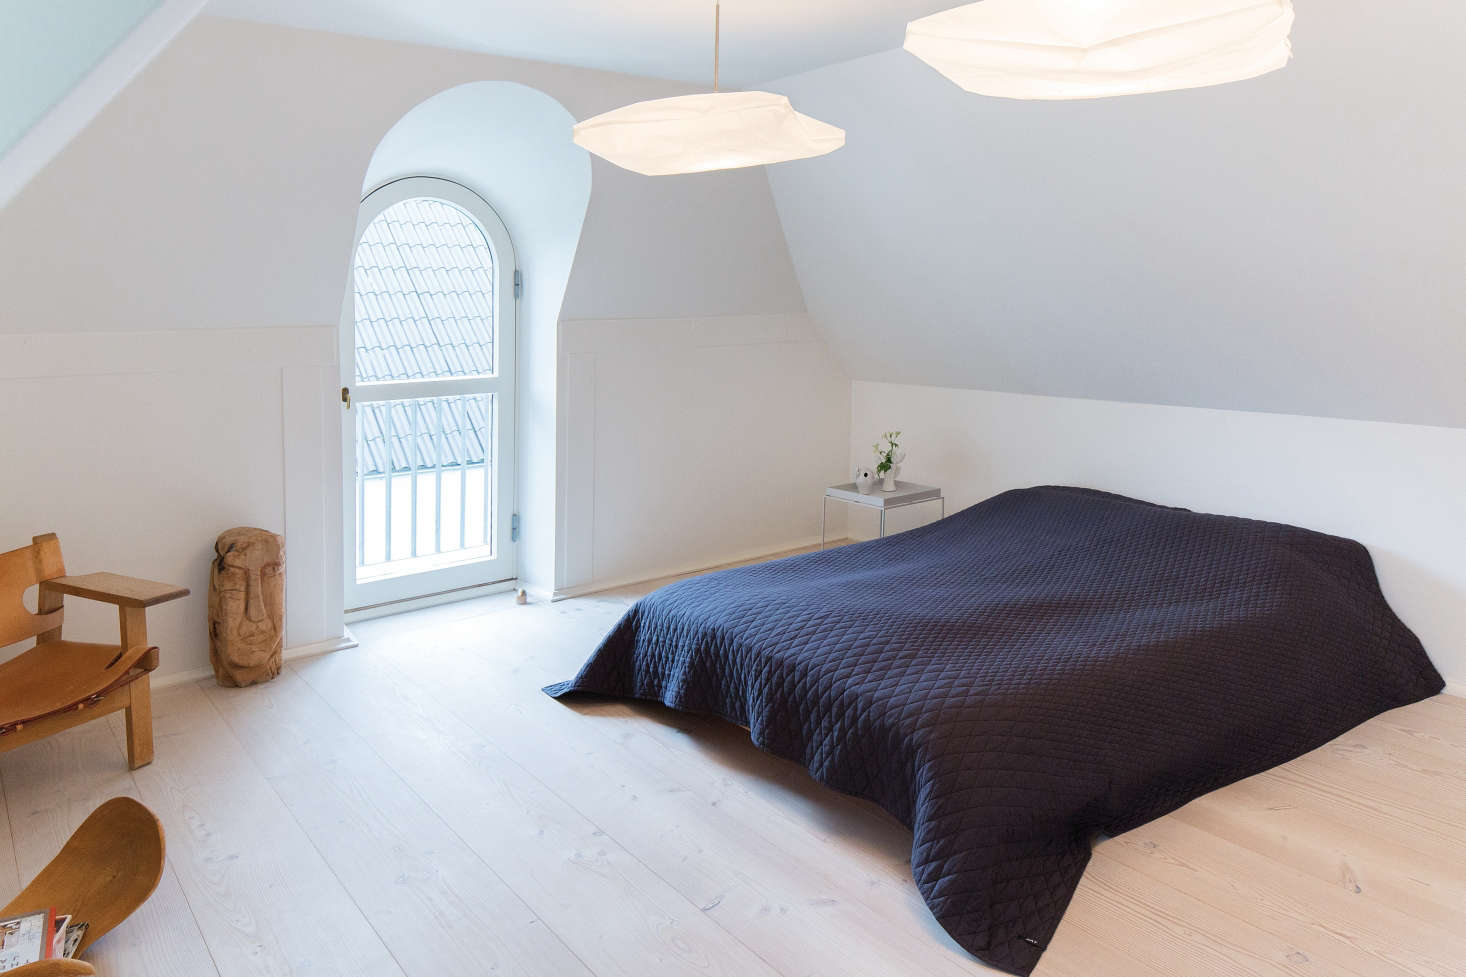 Imagine waking up and putting your bare feet on warm oak floorboards every morning in the winter. Photograph from The Dinesen Family House: A Historic Renovation for Danish Design Royalty.